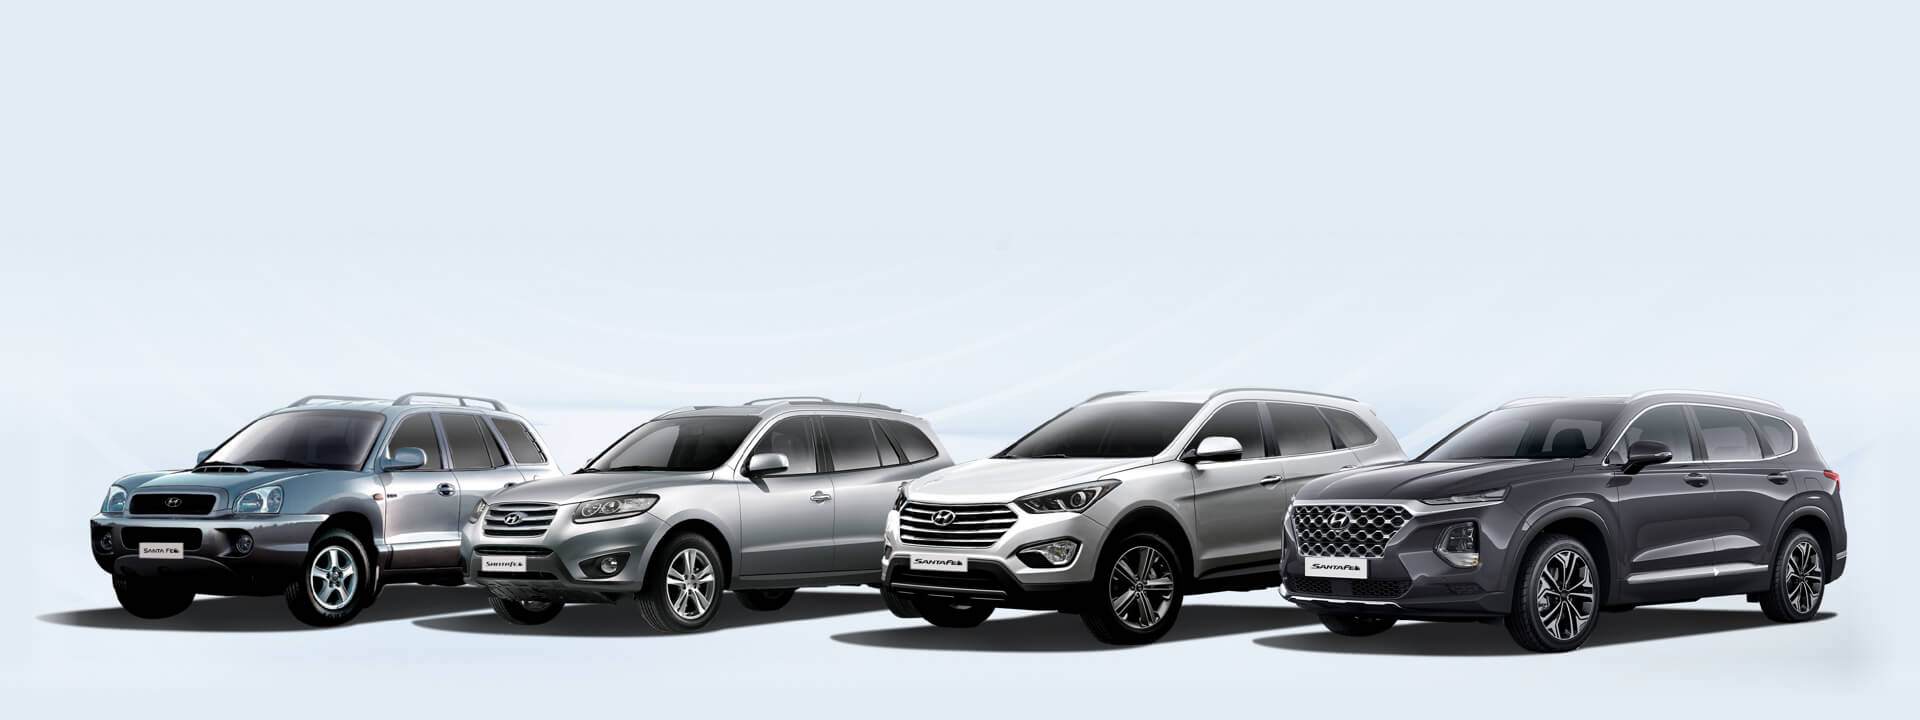 Two decades of the Hyundai Santa Fe.